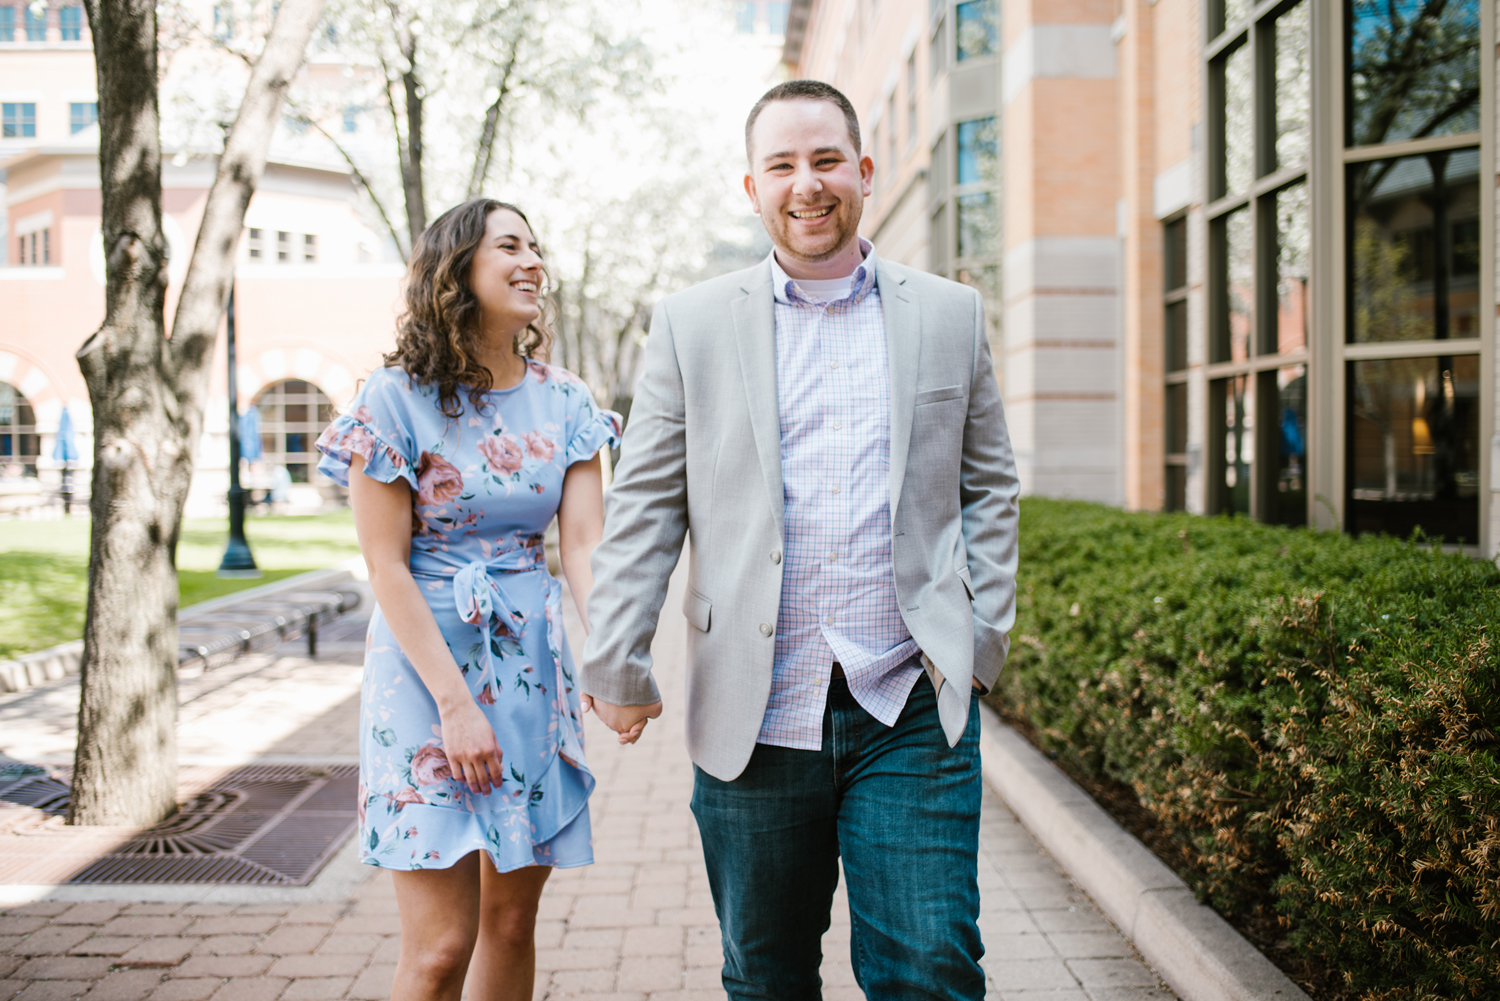 downtown-grand-rapids-michigan-engagement-photographer-spring-sydney-marie (35).jpg